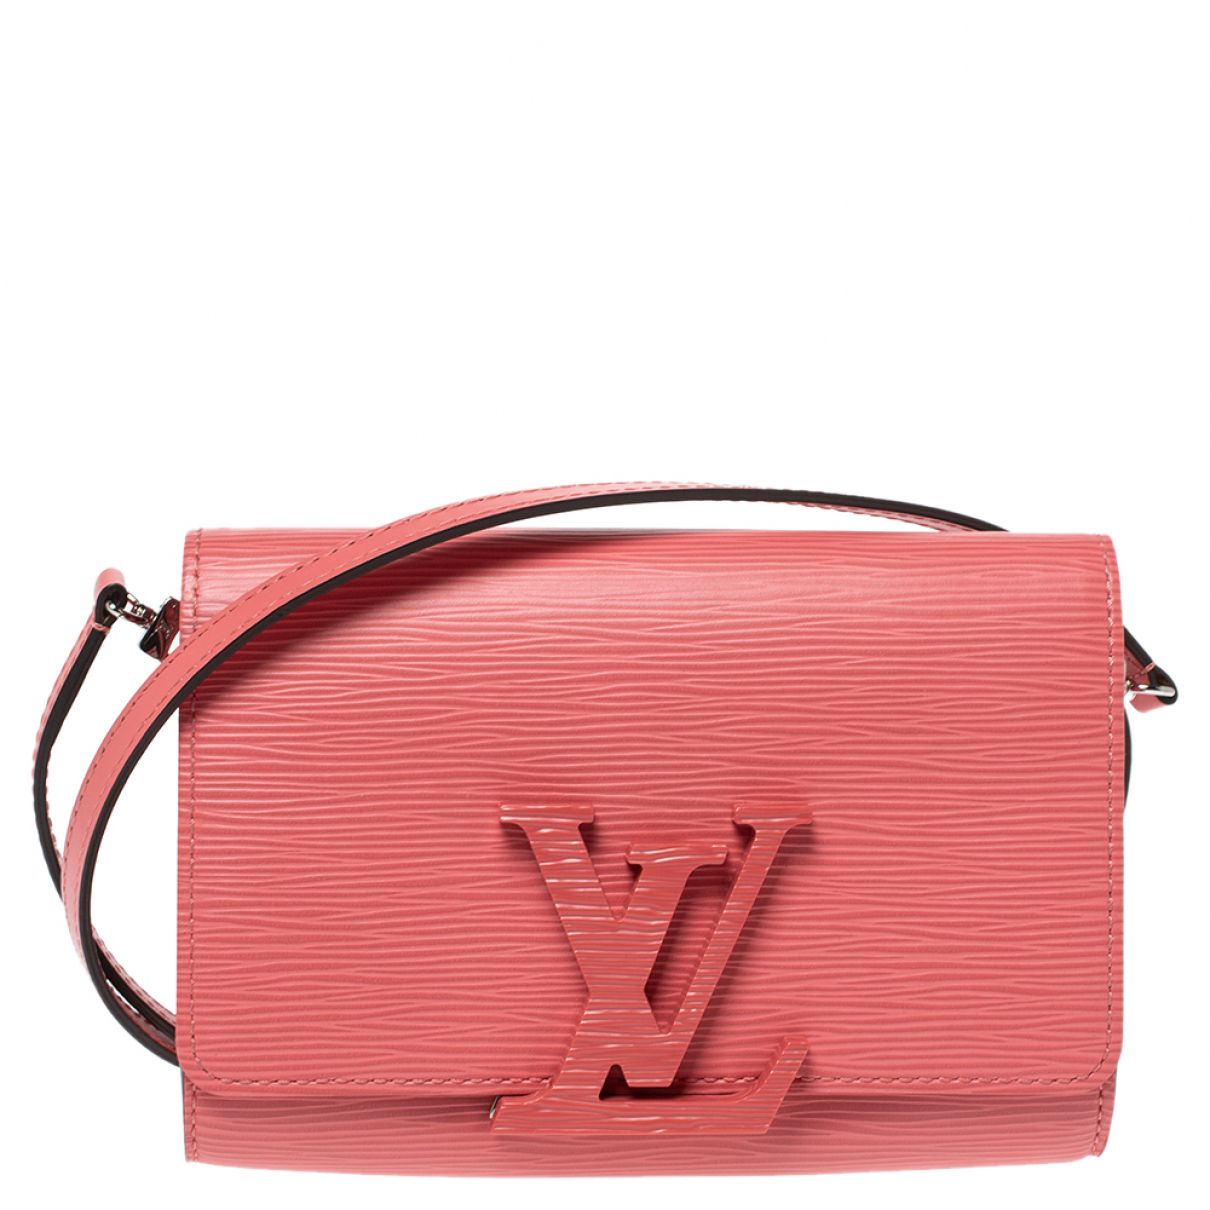 Louis Vuitton Louise Pink Leather handbag for Women N